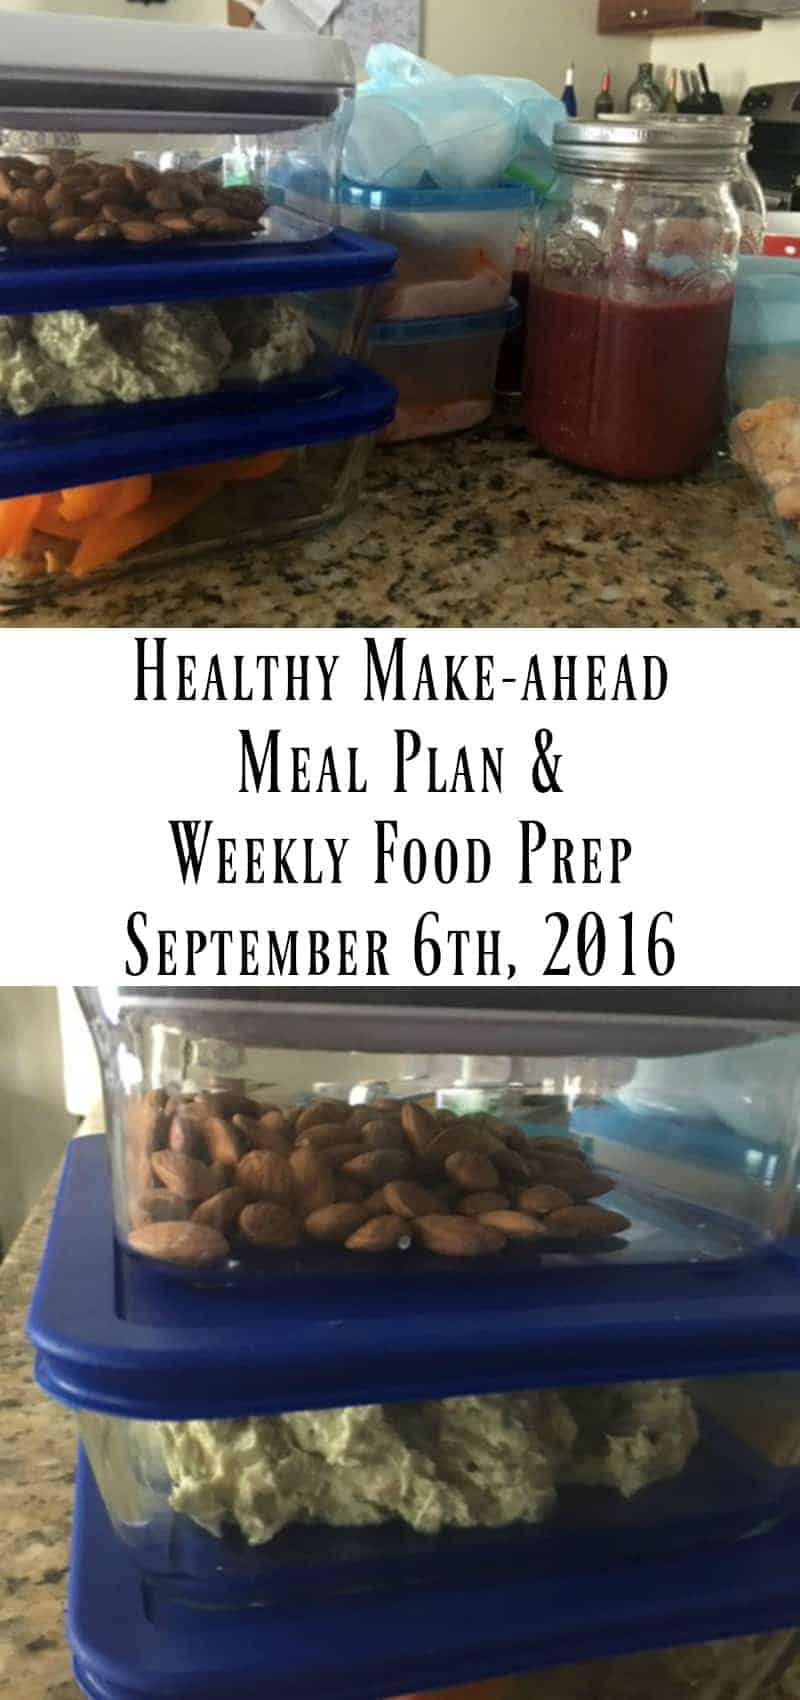 Healthy Make-ahead Meal Plan and Weekly Food Prep